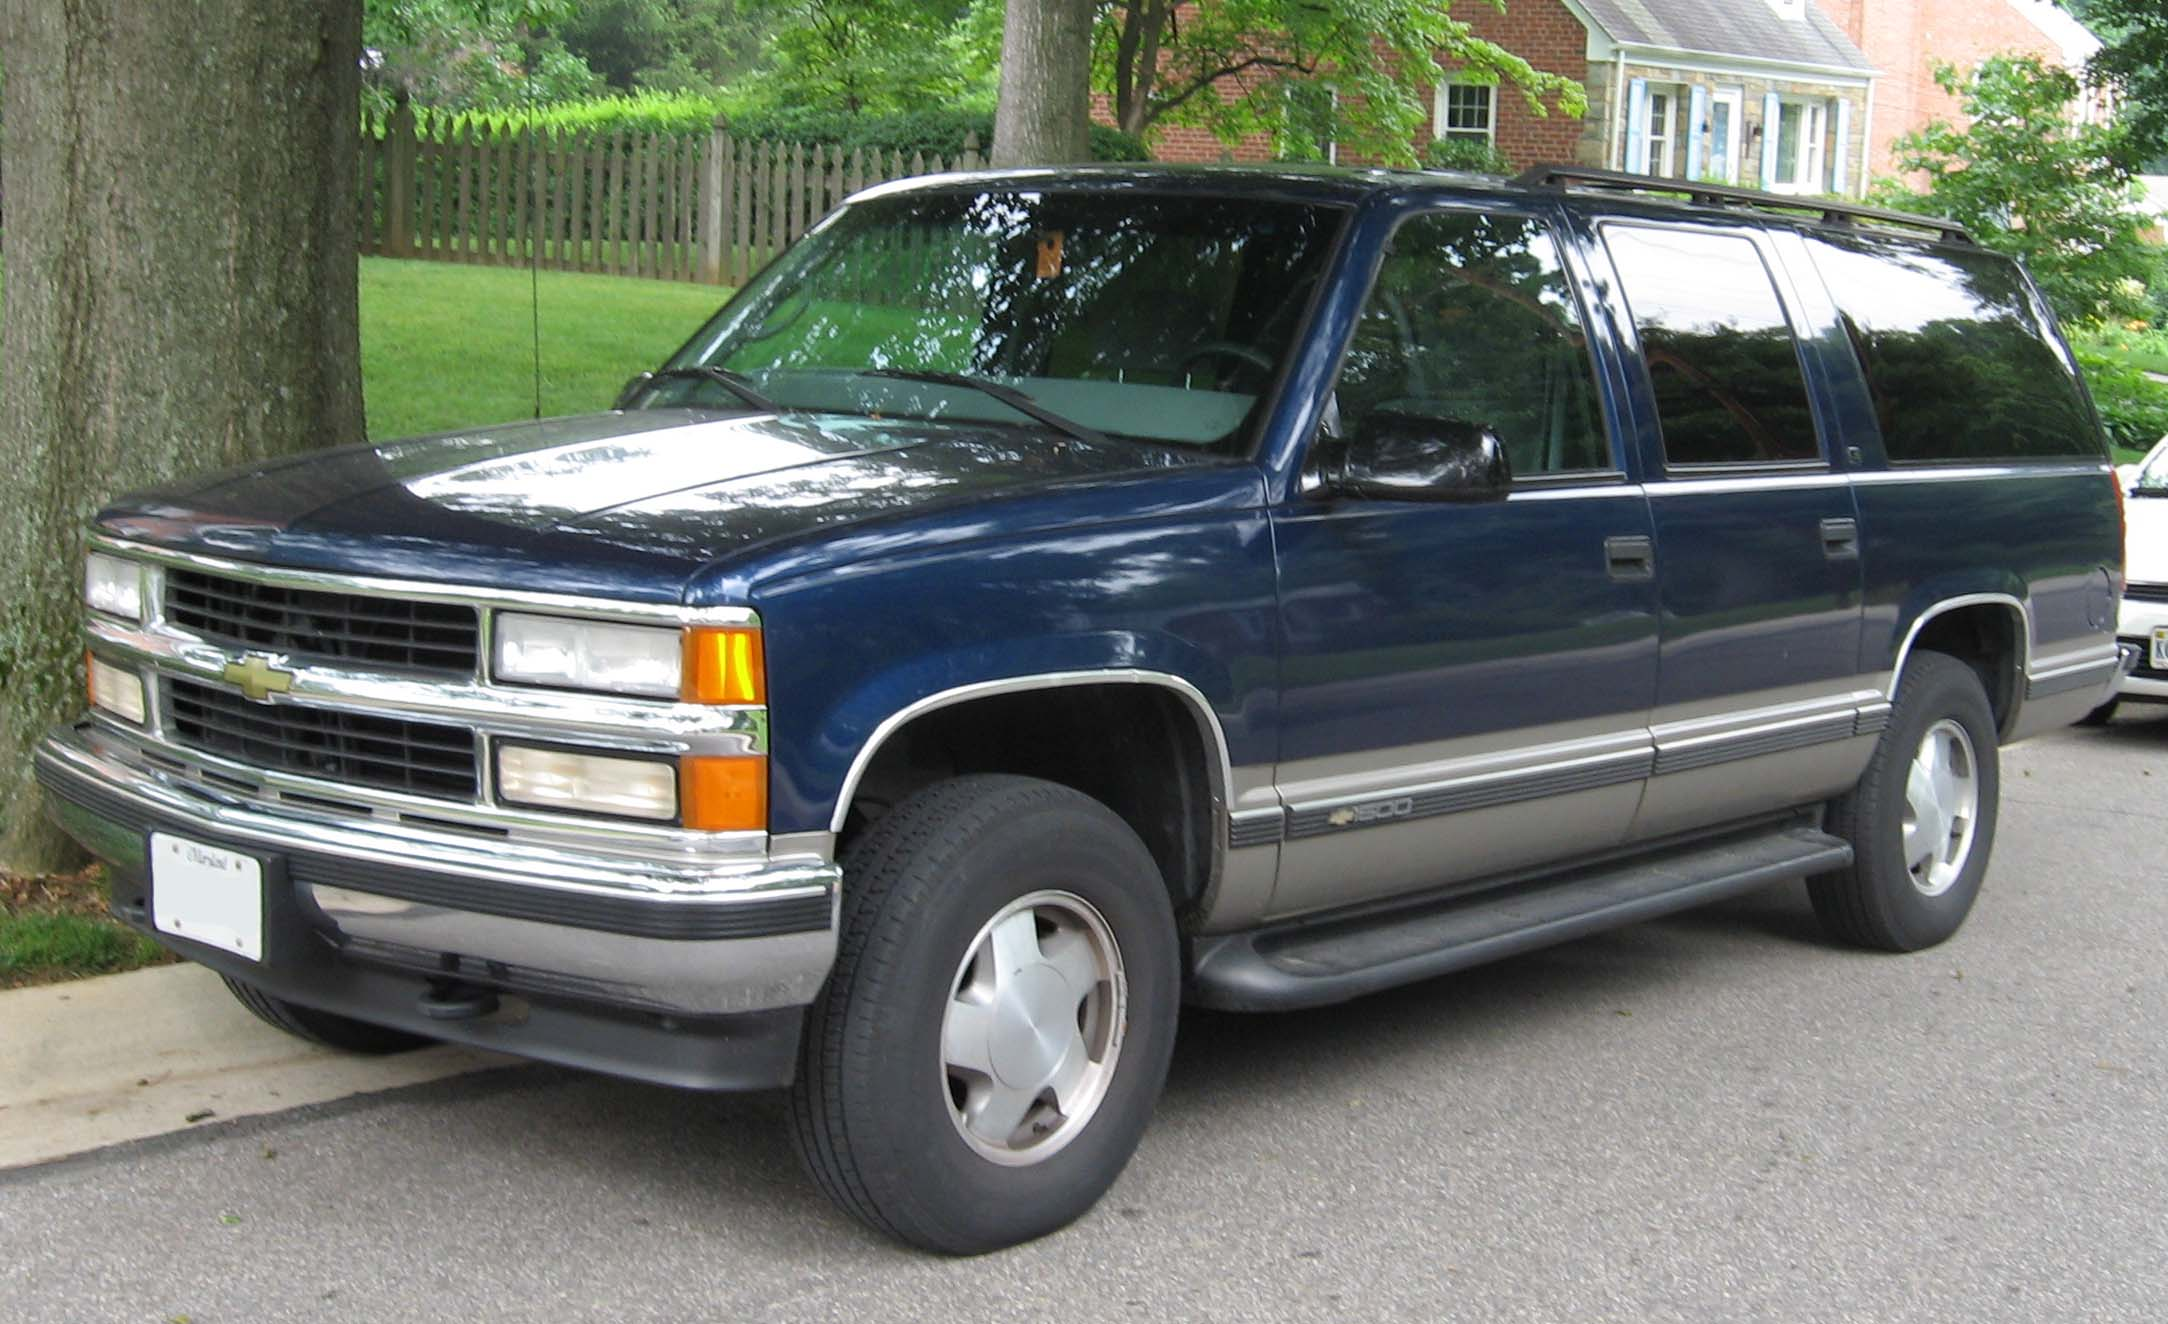 Chevrolet Suburban GMT400 Free Download Image Of